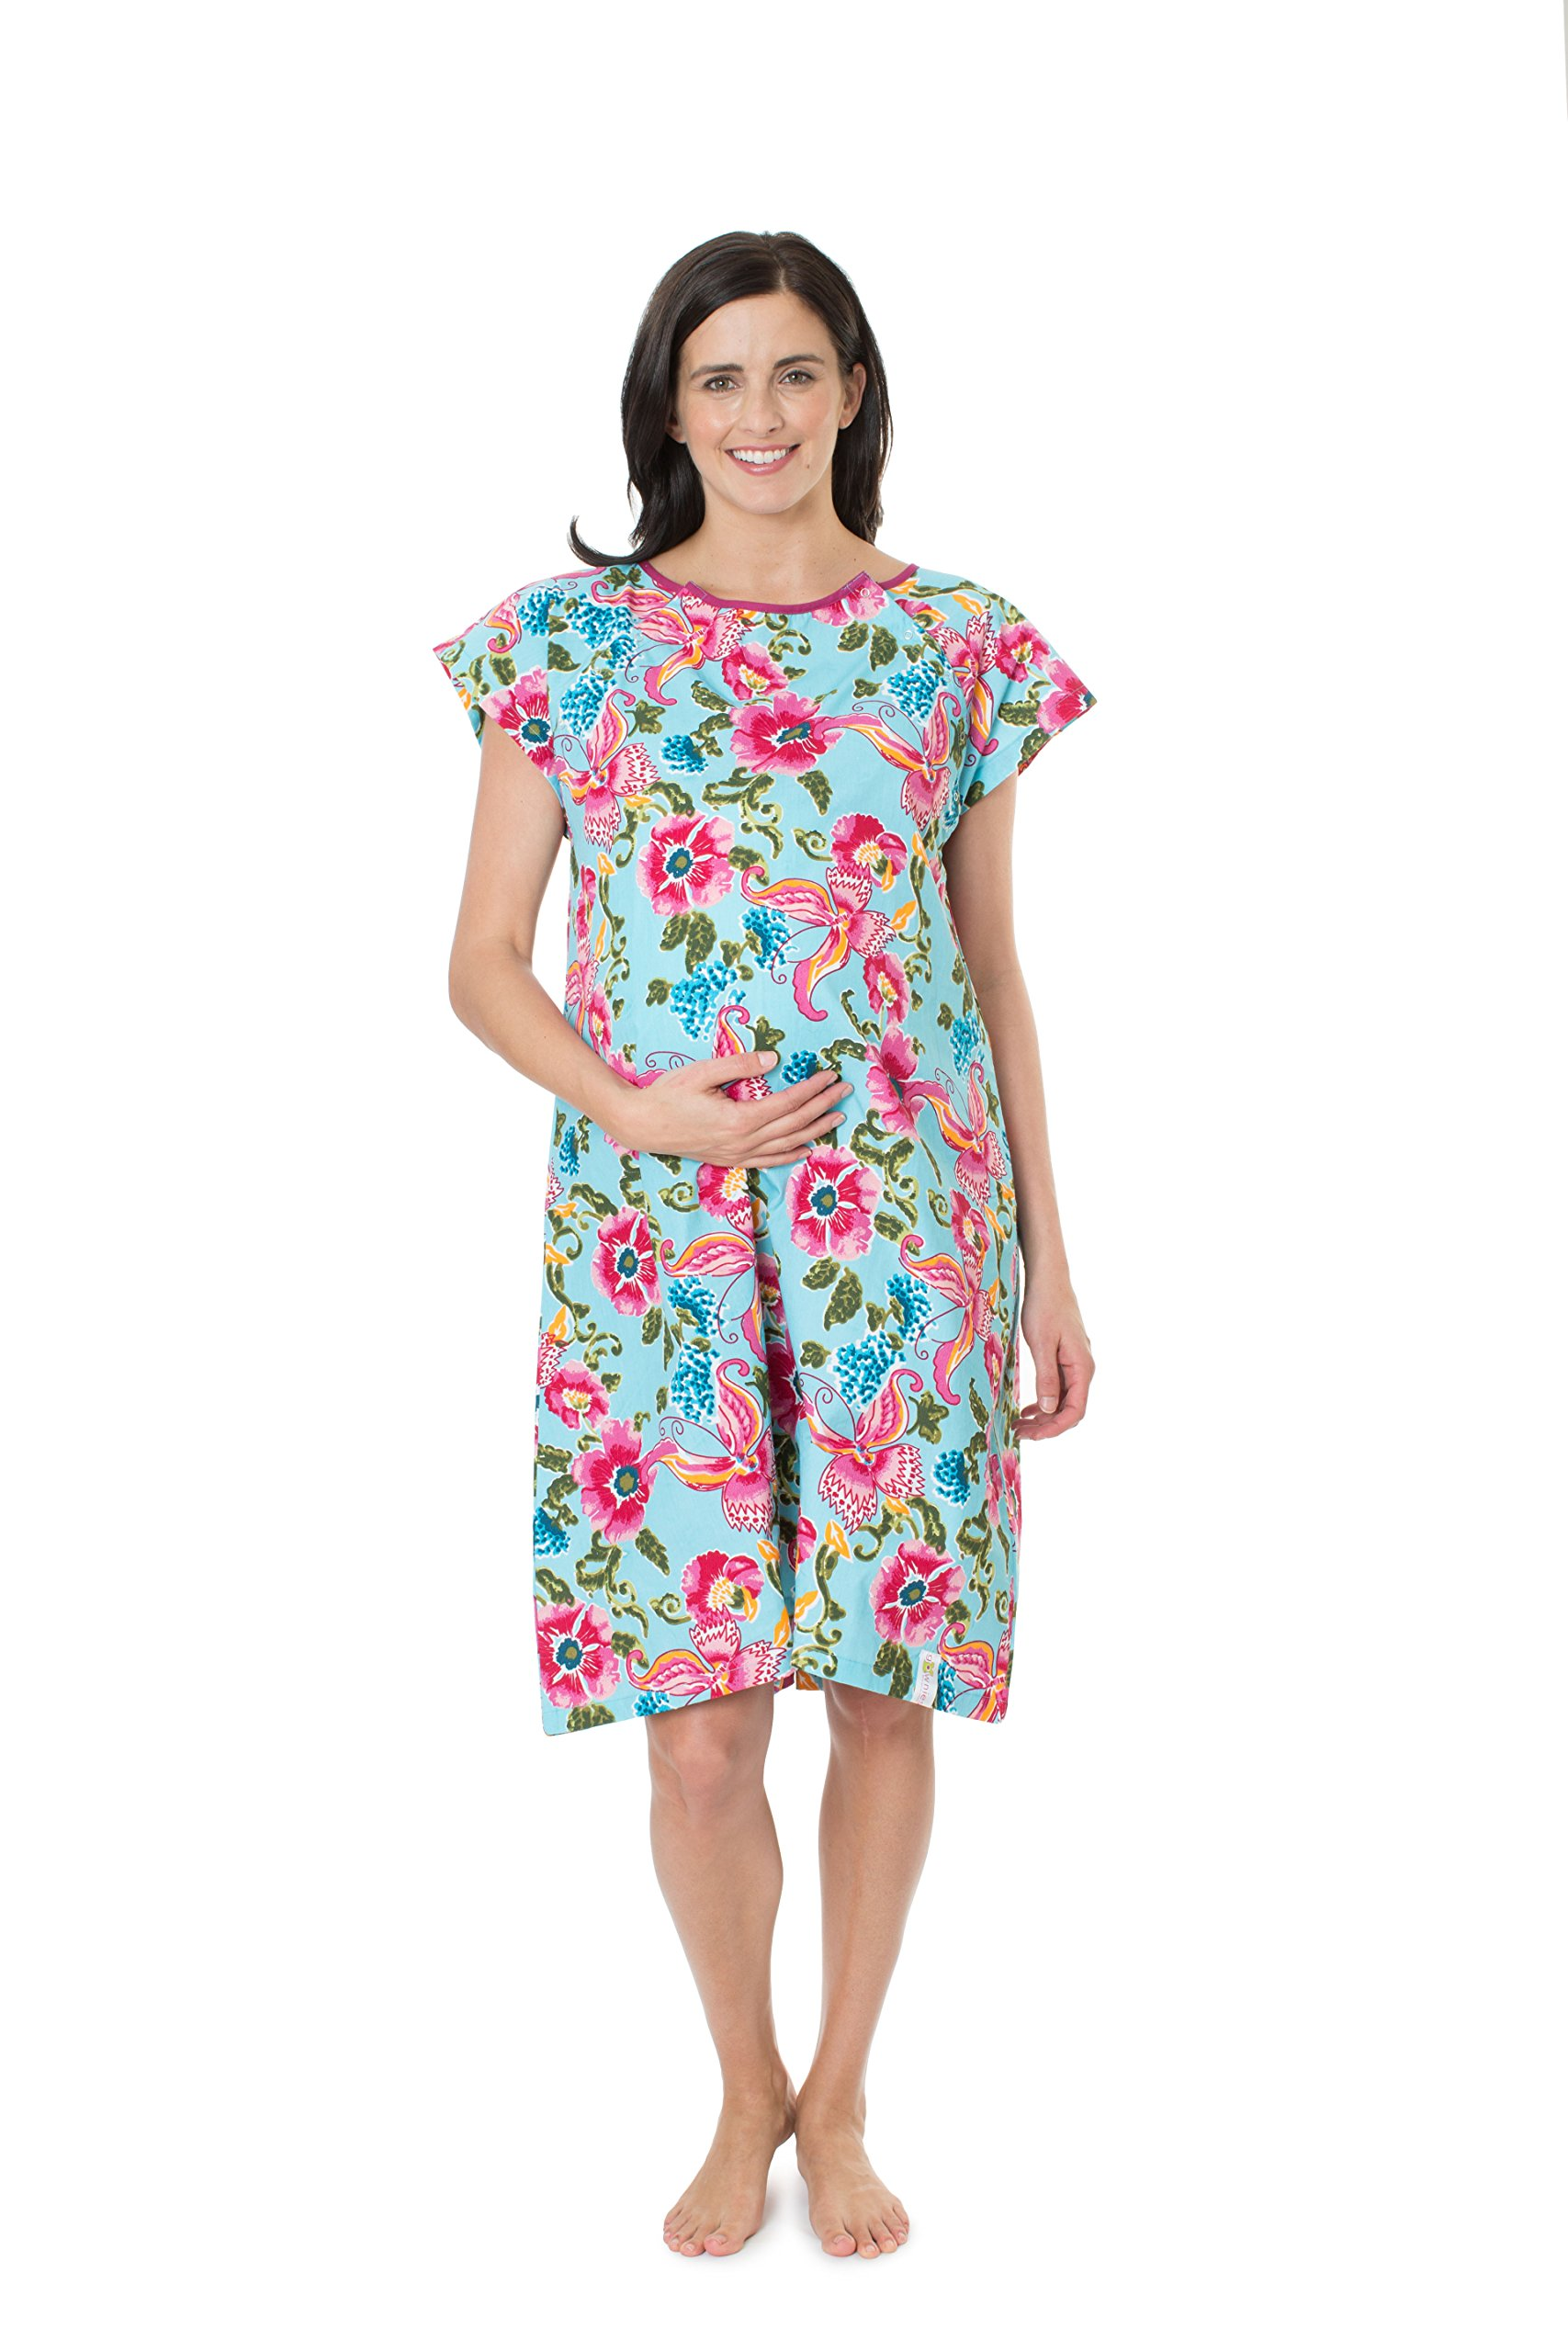 c8eada5ec11a0 Baby Be Mine Gownies - Designer Hospital Gown Labor Kit (Large/X Large  prepregnancy 10-18, Isabelle Gownie with matching pilowcase) < Sleep &  Lounge ...